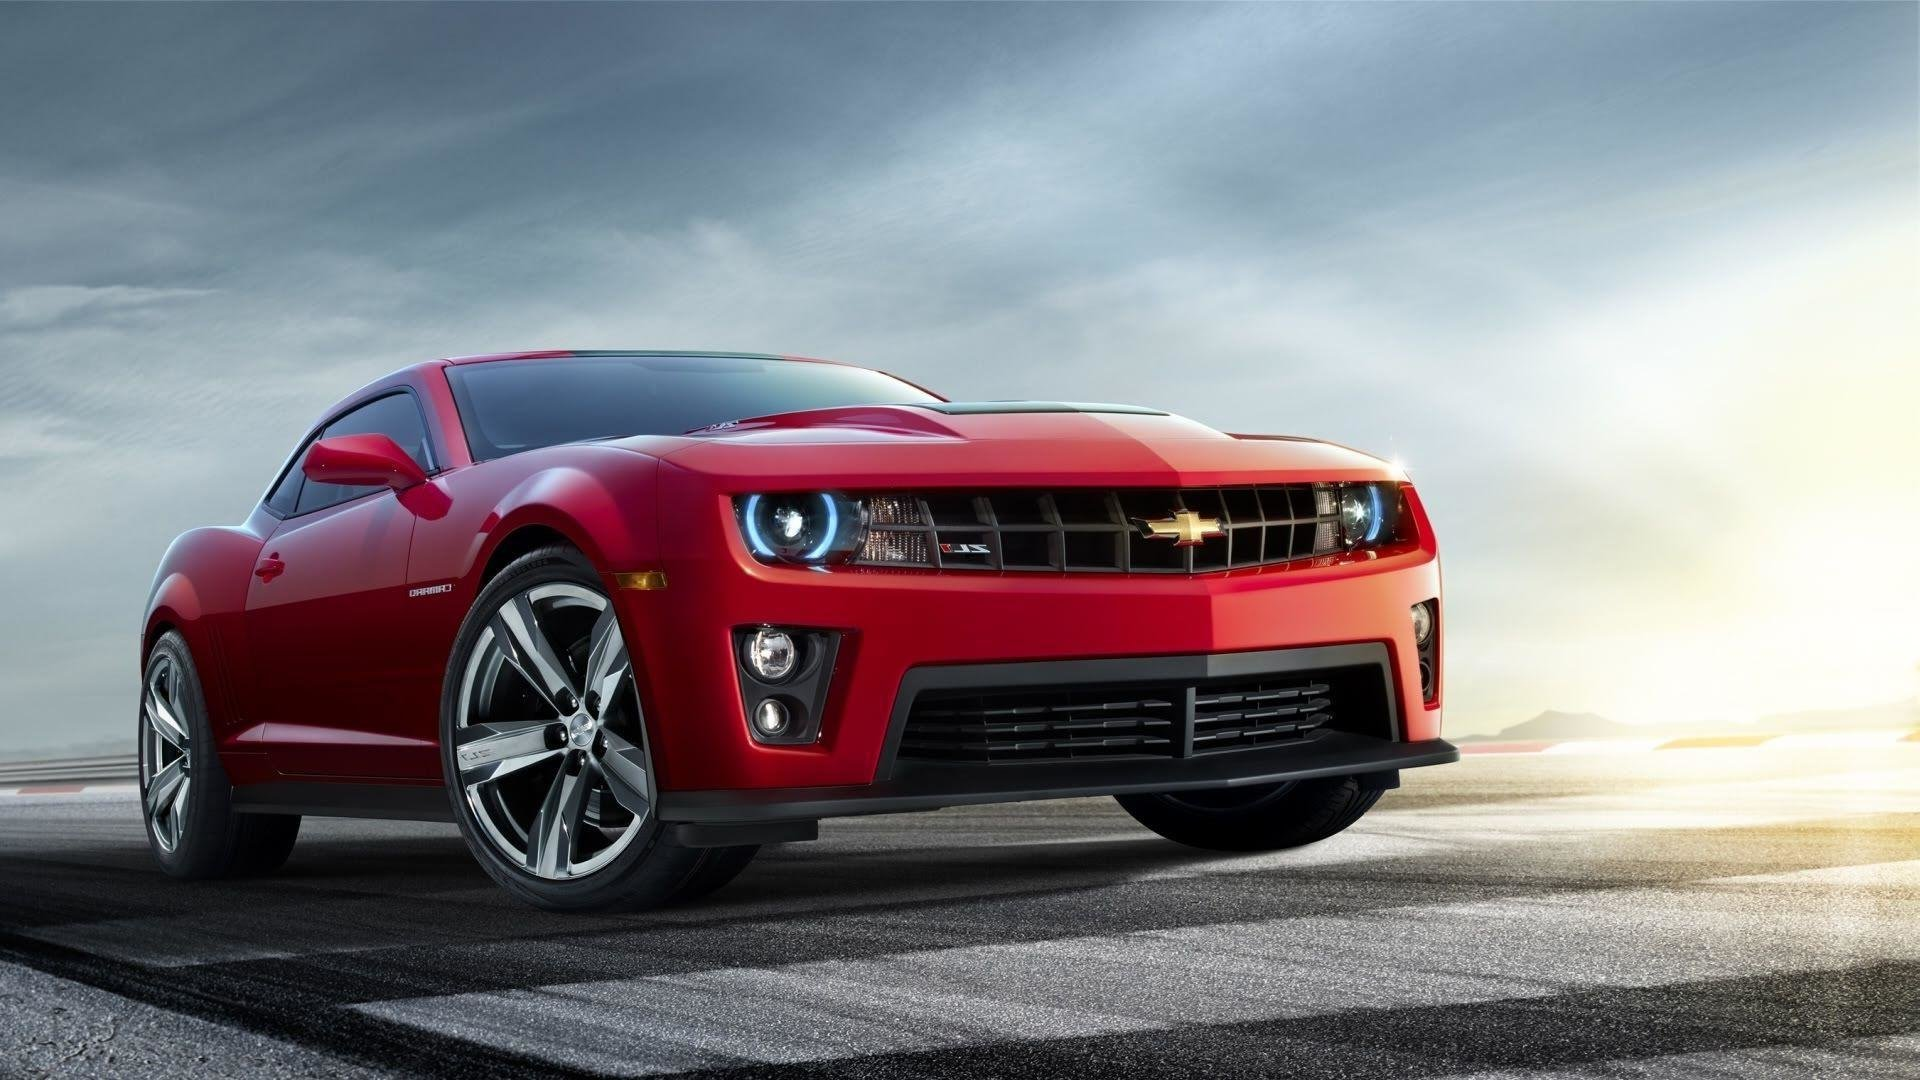 New Chevrolet Camaro Wallpapers Wallpaper Cave On This Month